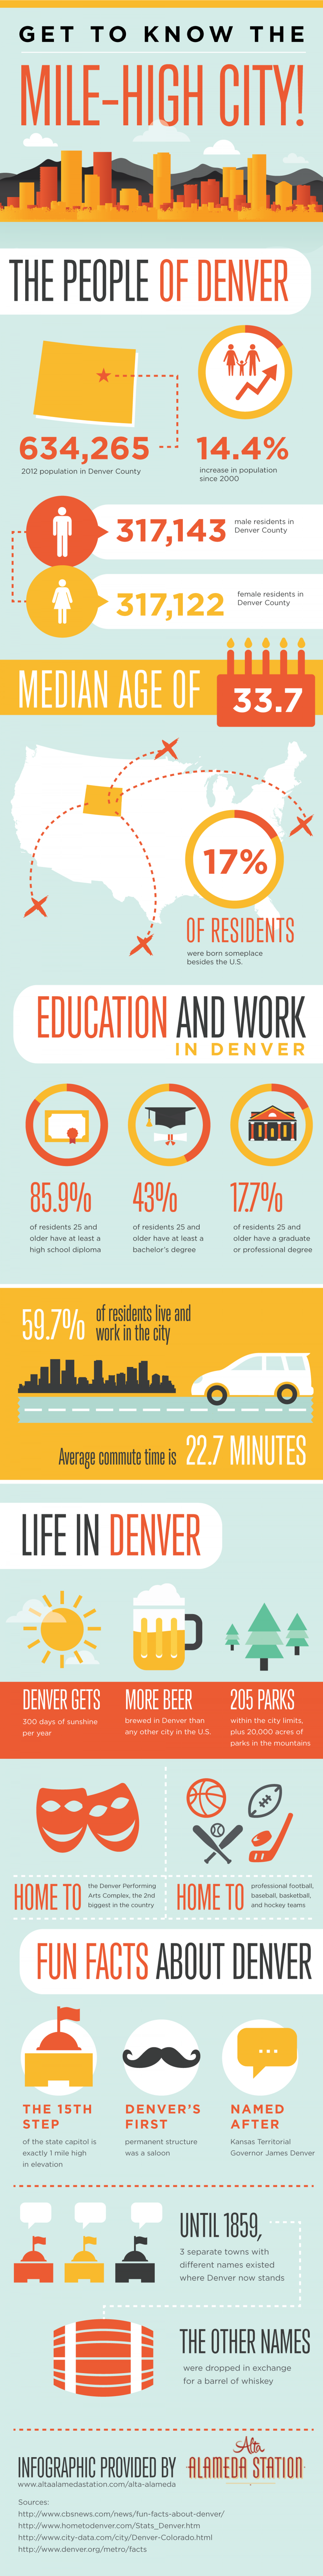 Get to Know the Mile-High City! Infographic